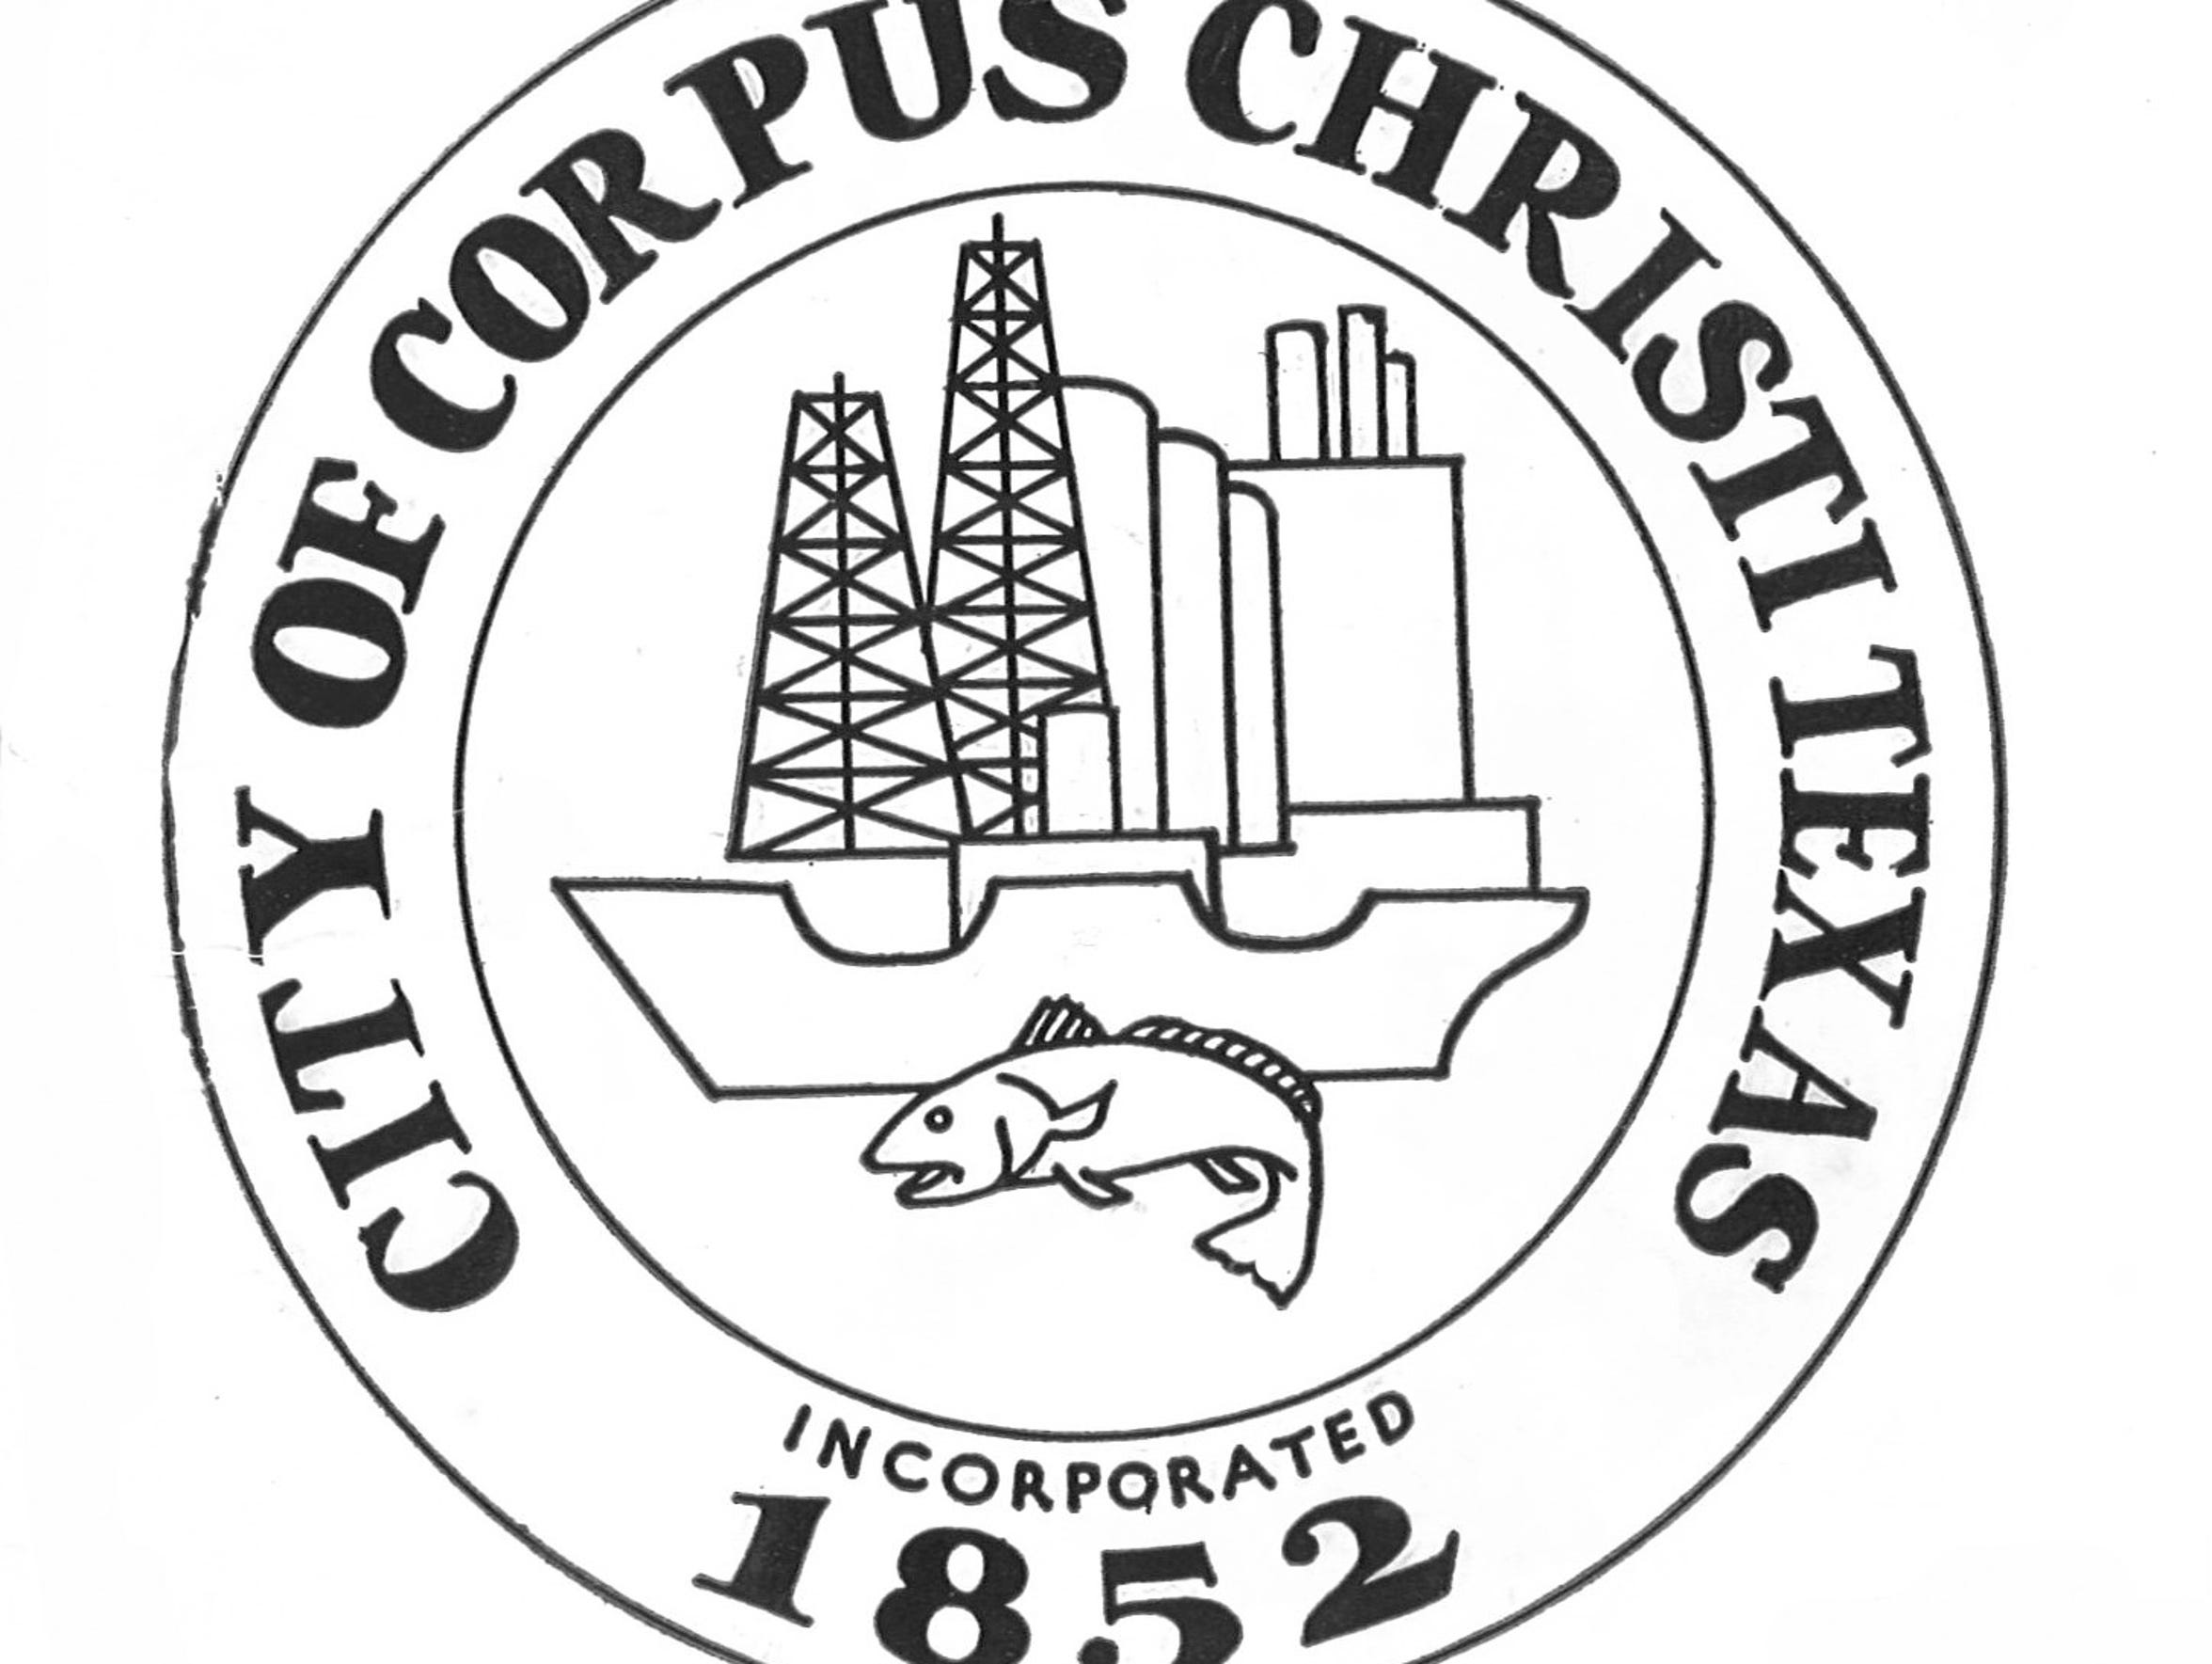 This was the official seal of Corpus Christi until